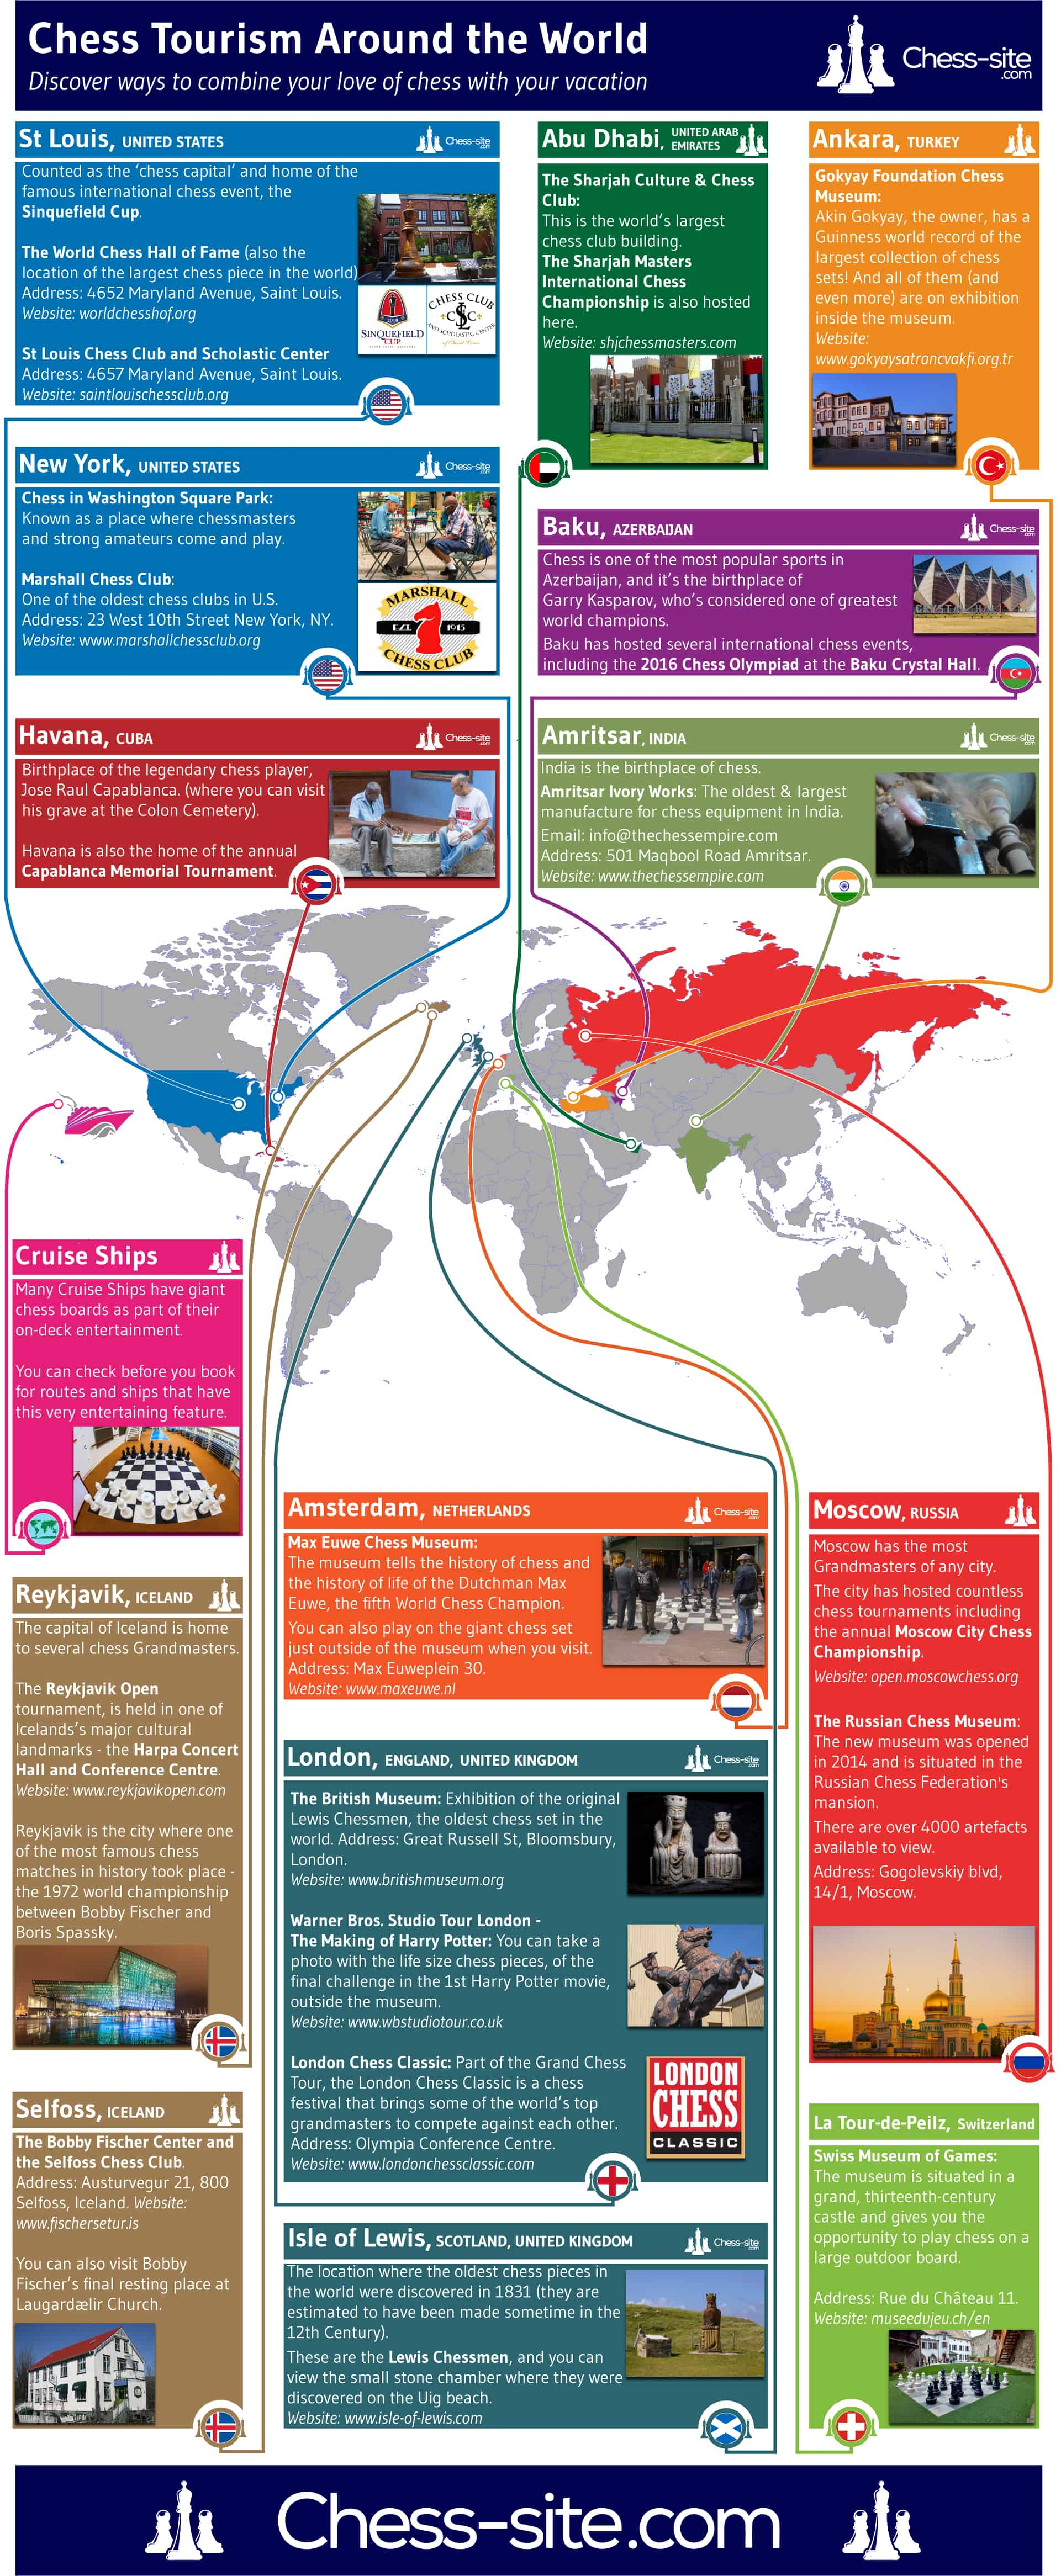 Chess Tourism Around the World - Infographic